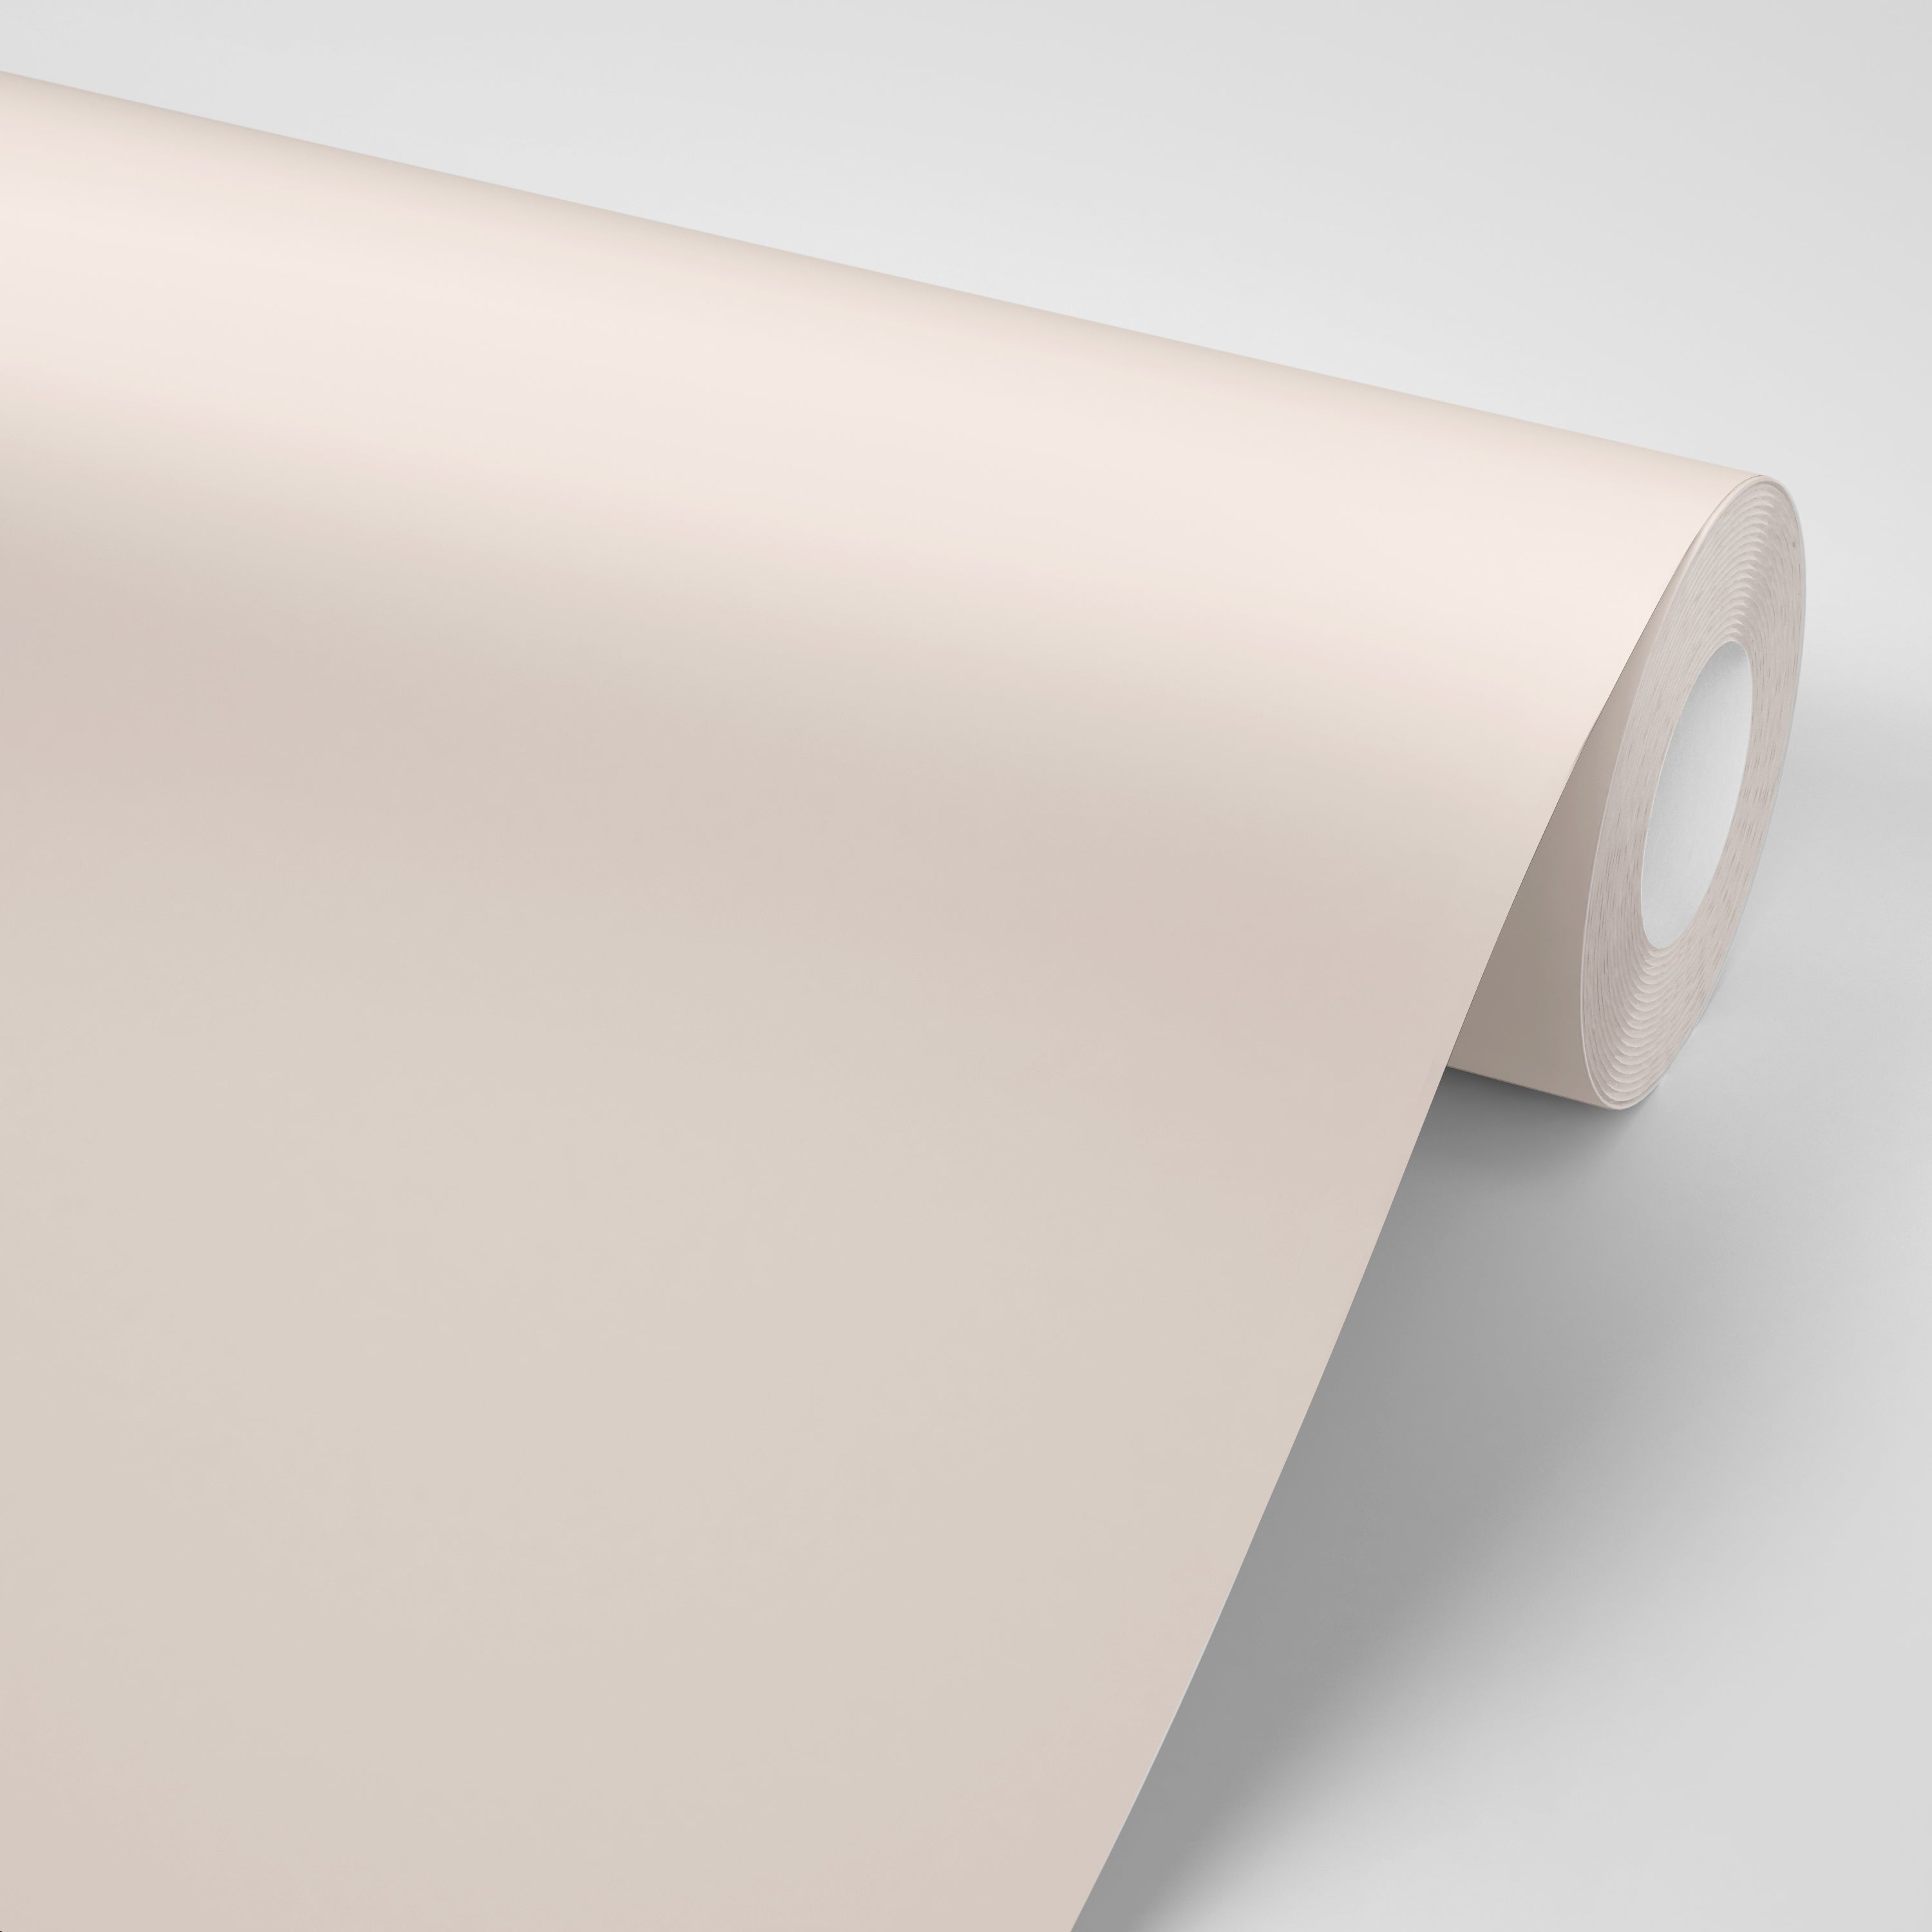 Soft Shell Pink Paint replacement self adhesive colored paper made in USA by Mitchell Black Wallpaper in Chicago